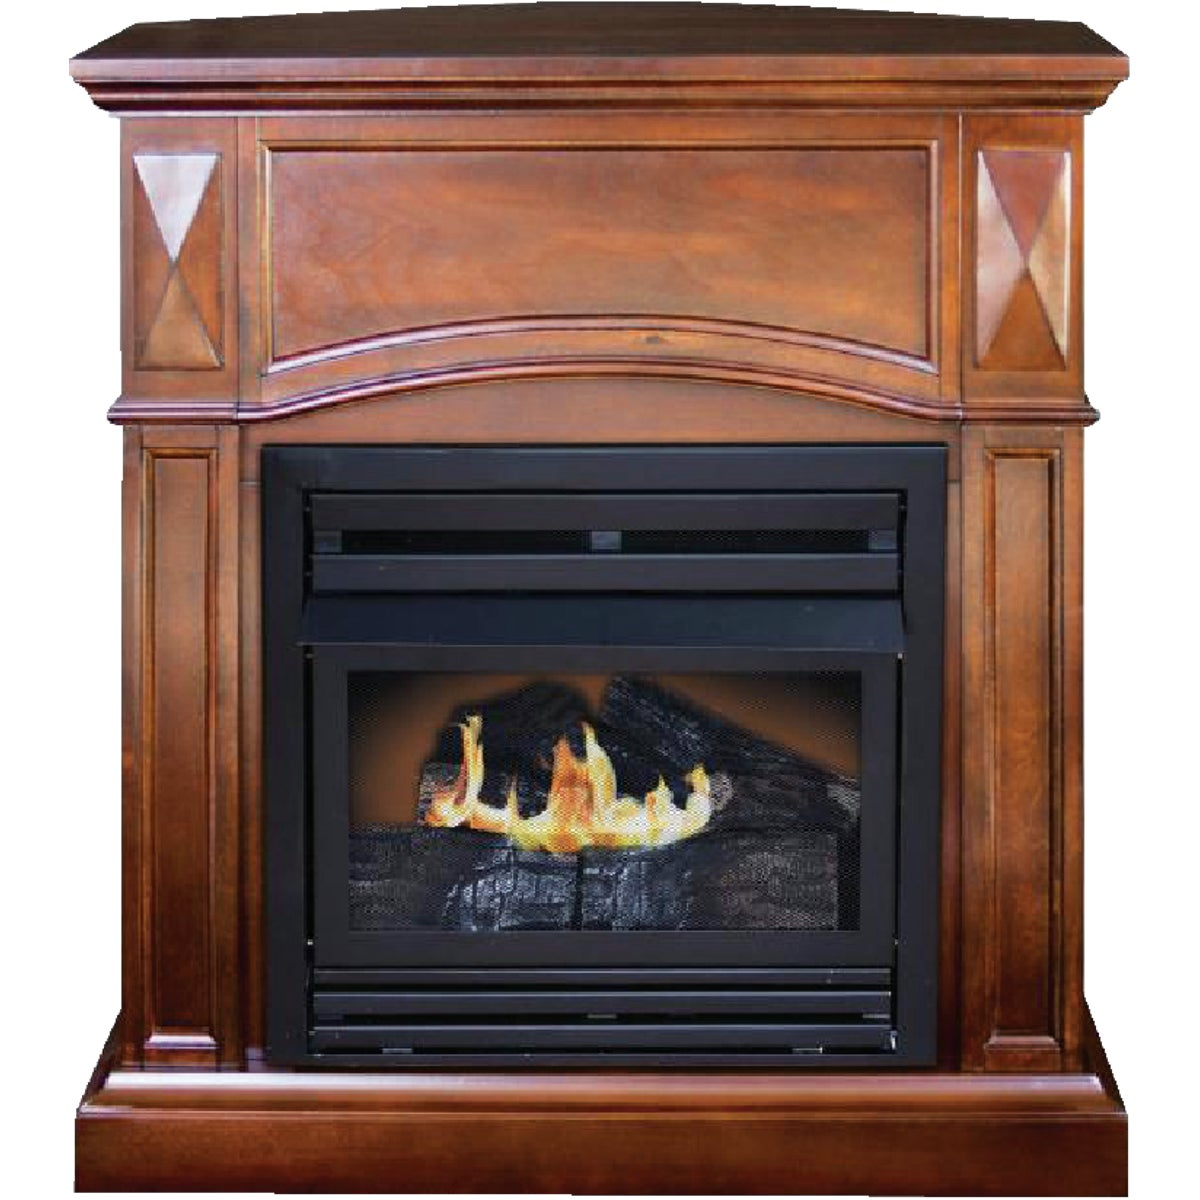 20K DUAL FUEL FIREPLACE - GFD2520 by World Marketing